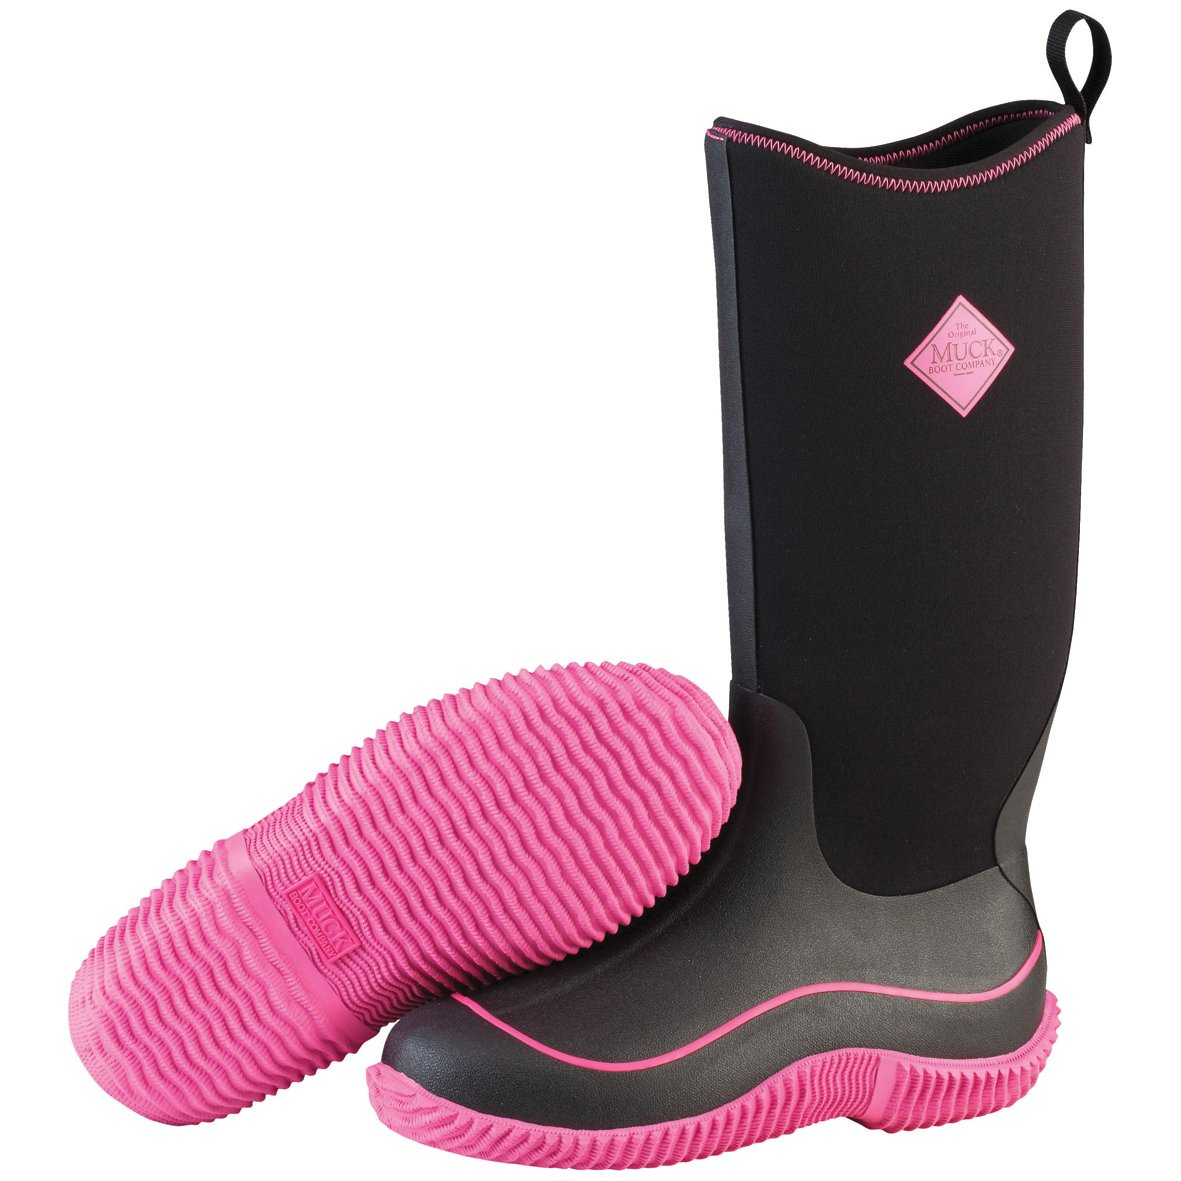 Muck Boots Hale Multi-Season Women's Rubber Boot, Black/Hot Pink, 8 M US by Muck Boot